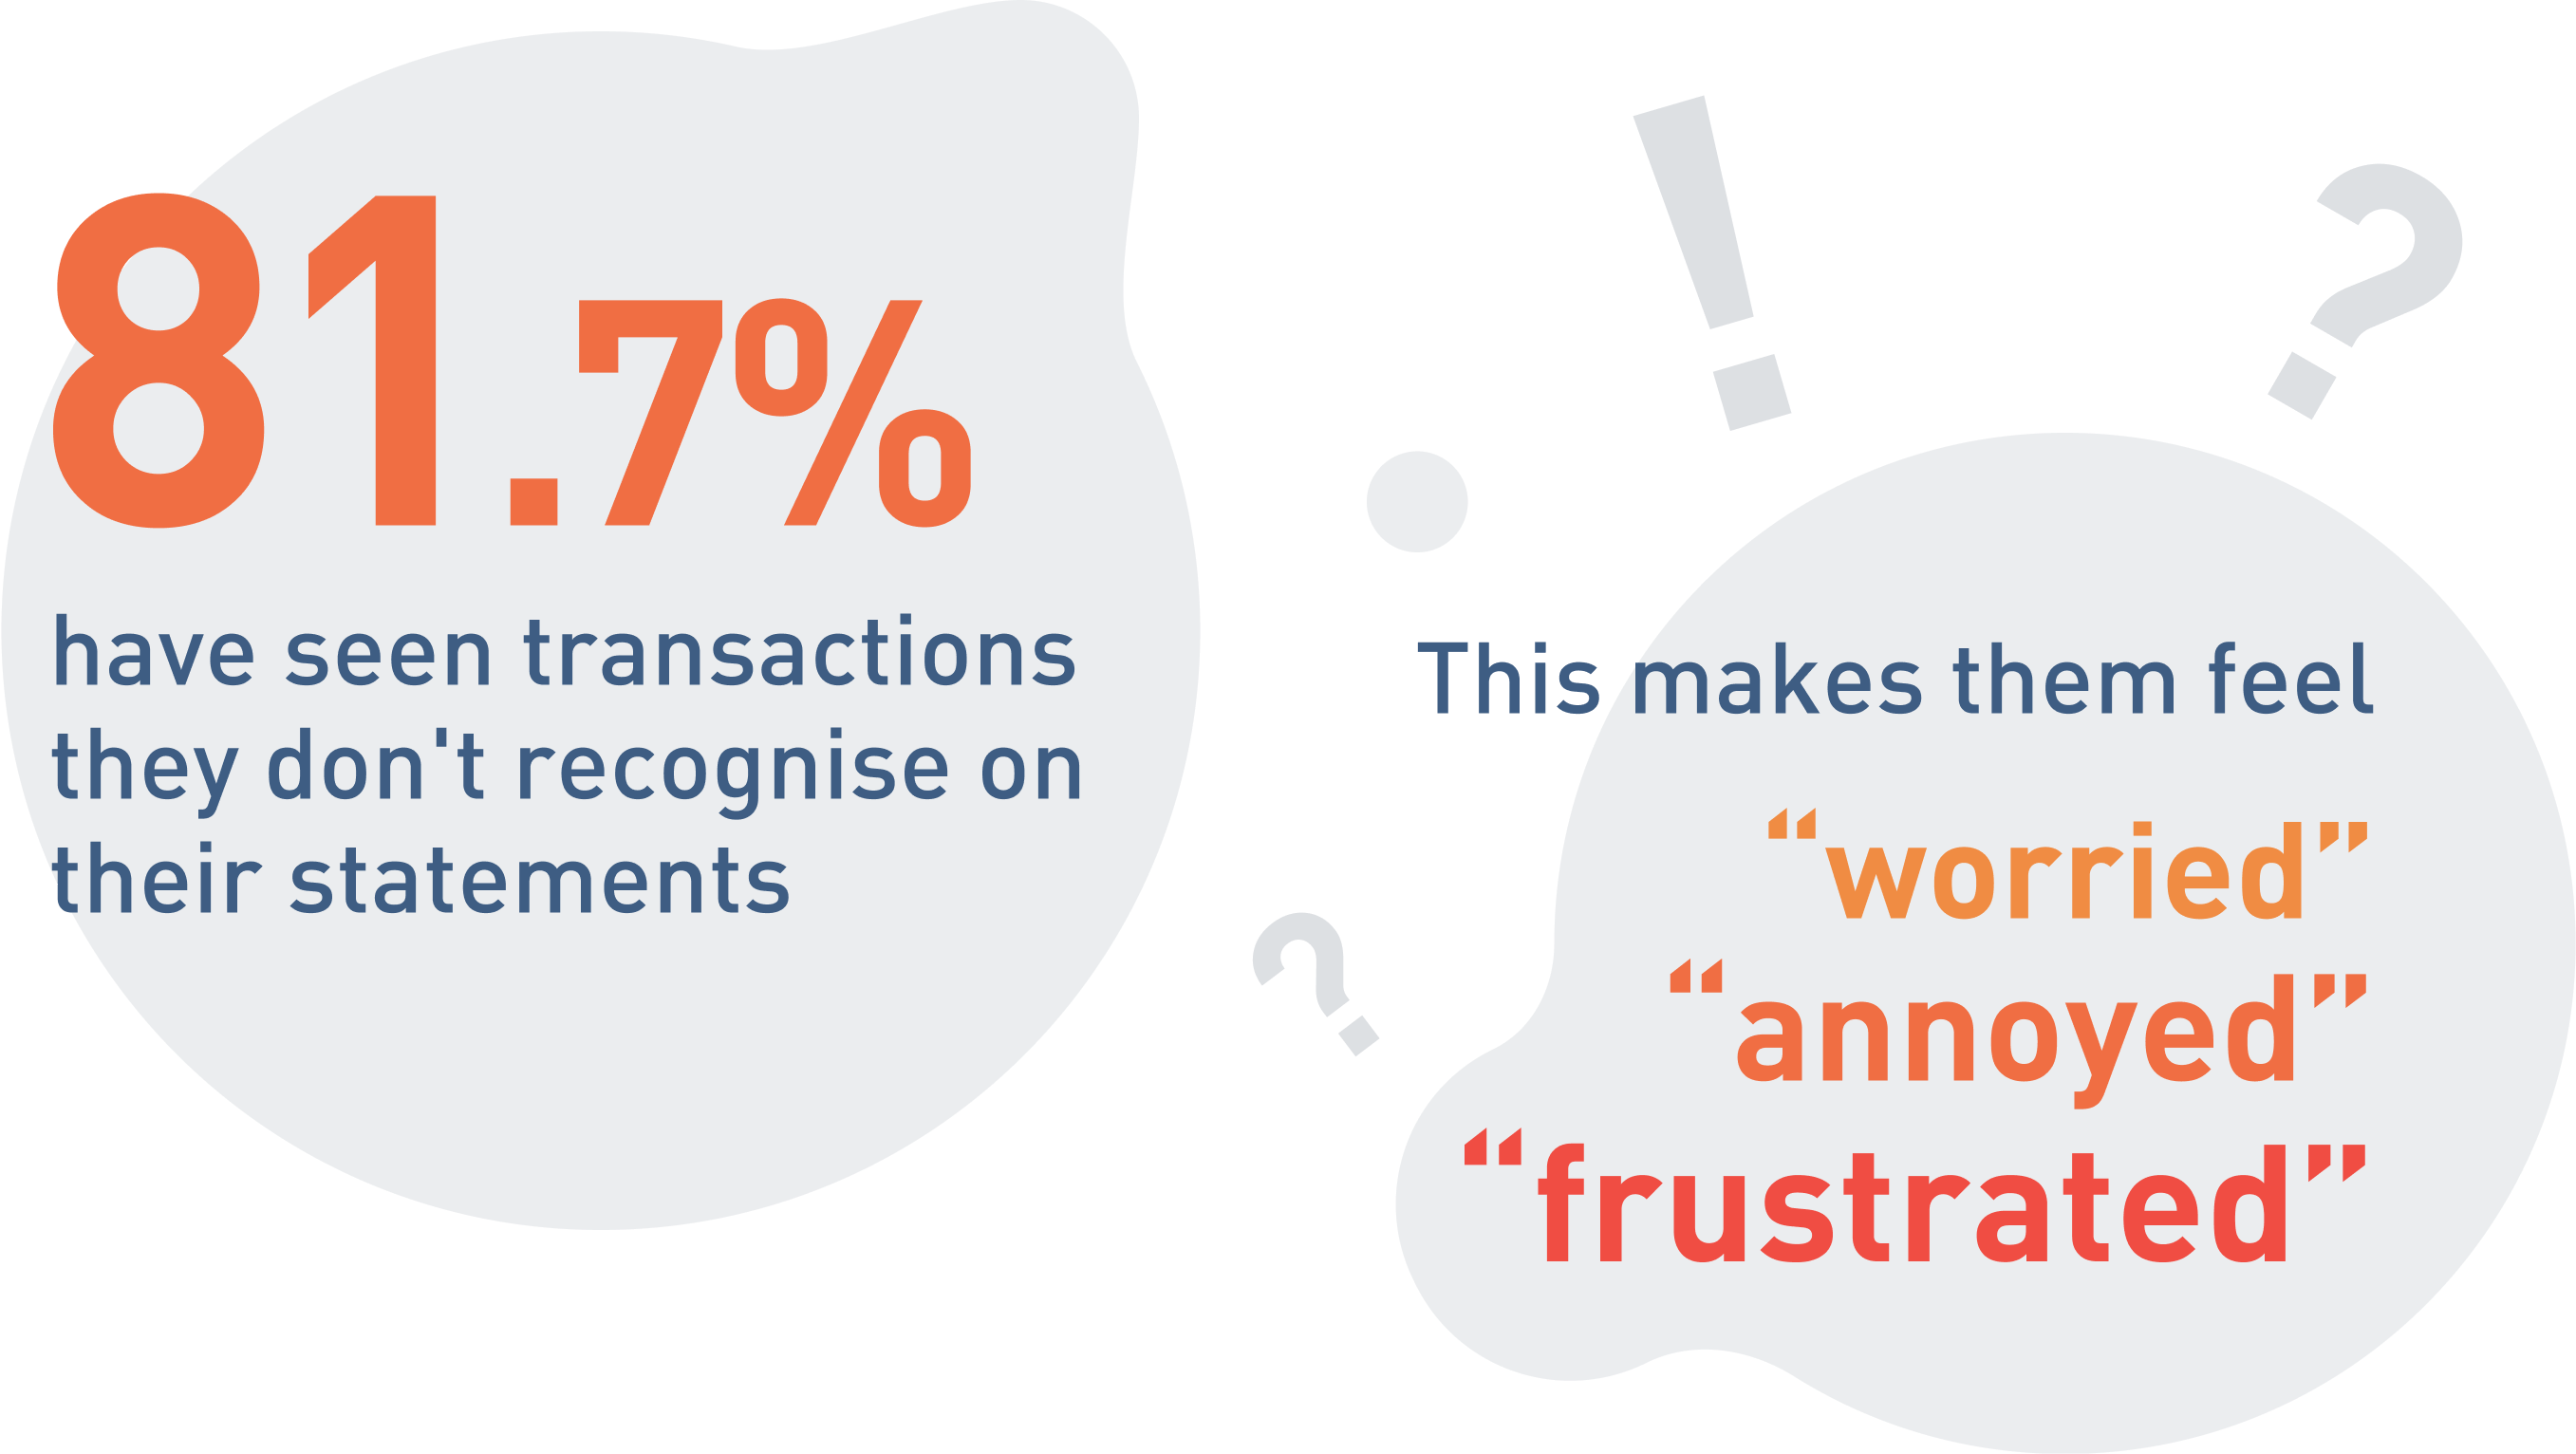 81.7% have seen transactions they don't recognise on their statements